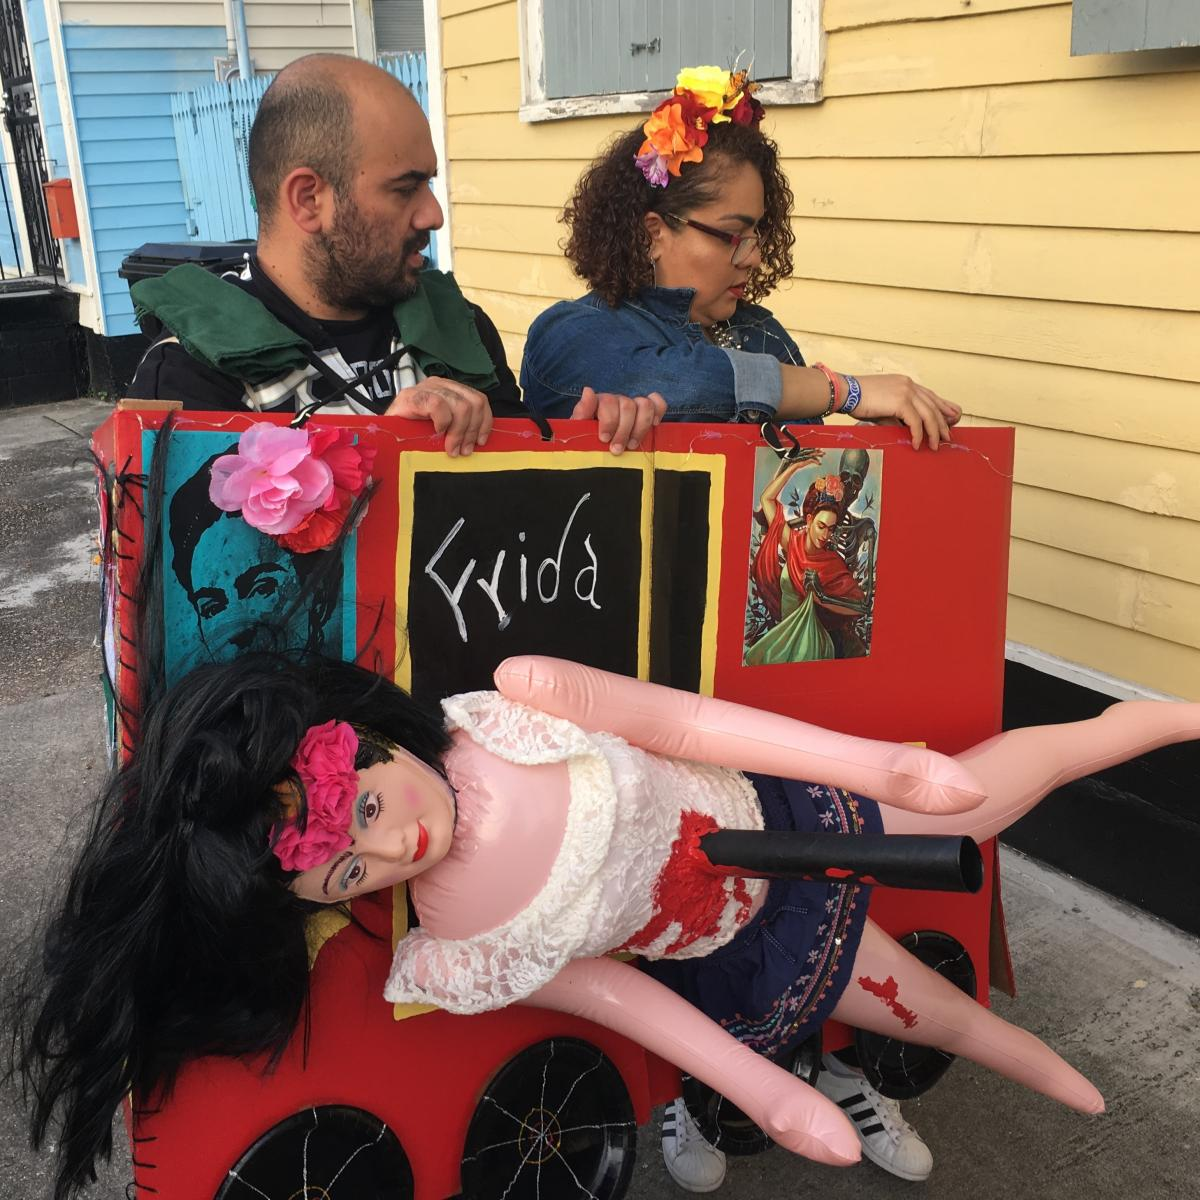 Krewe members Eduardo Courtade and Maria Albarran grew up in Mexico before moving to New Orleans. Their costume depicts Frida Kahlo's near-death accident as a teen.